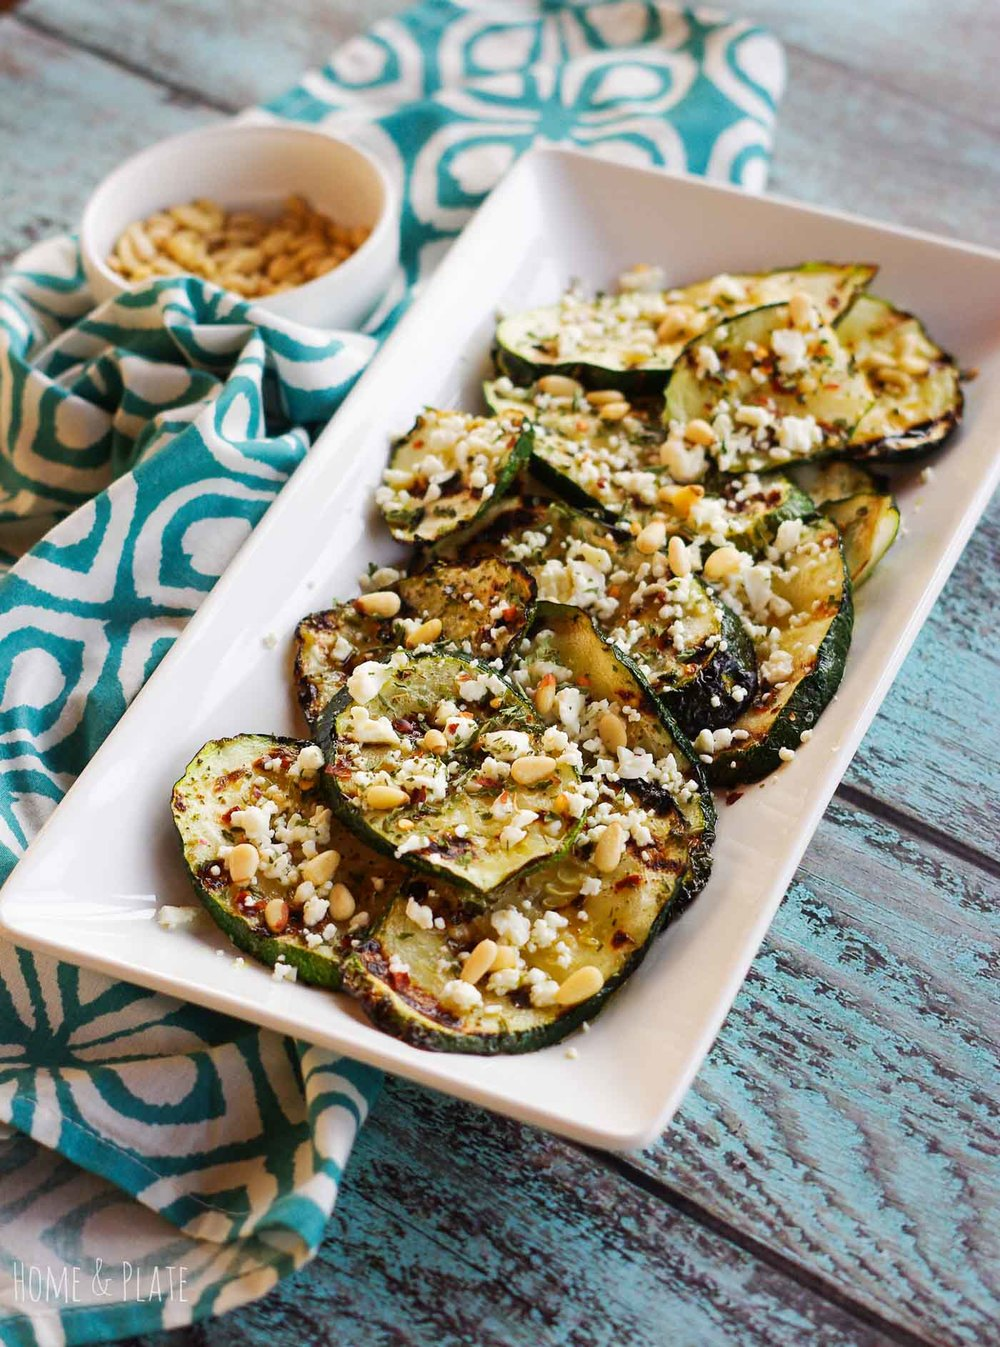 Grilled Zucchini with Feta & Pine Nuts | www.homeandplate.com | This recipe of grilled zucchini with feta and pine nuts makes grilling out easy and delicious.